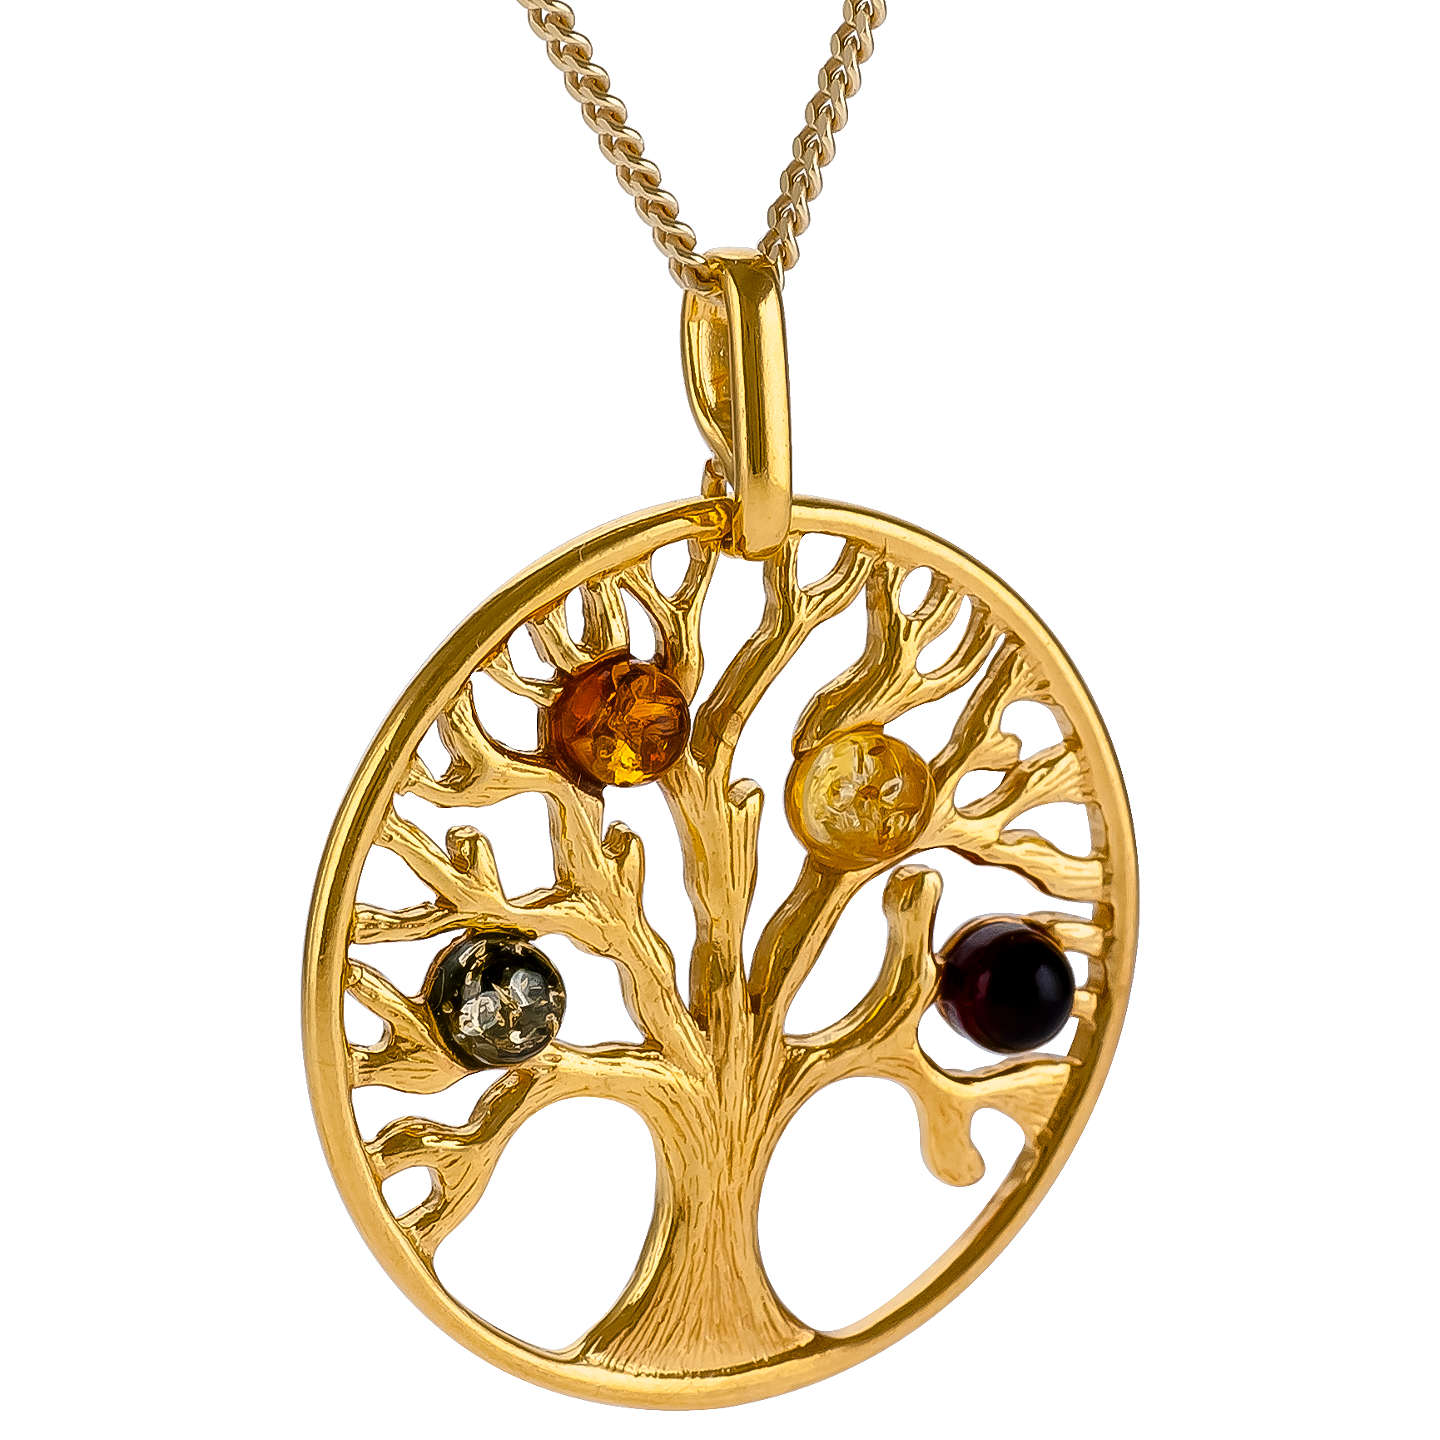 jones tree sophiejonesjewellery silver original by sterling family sophie jewellery necklace product pendant